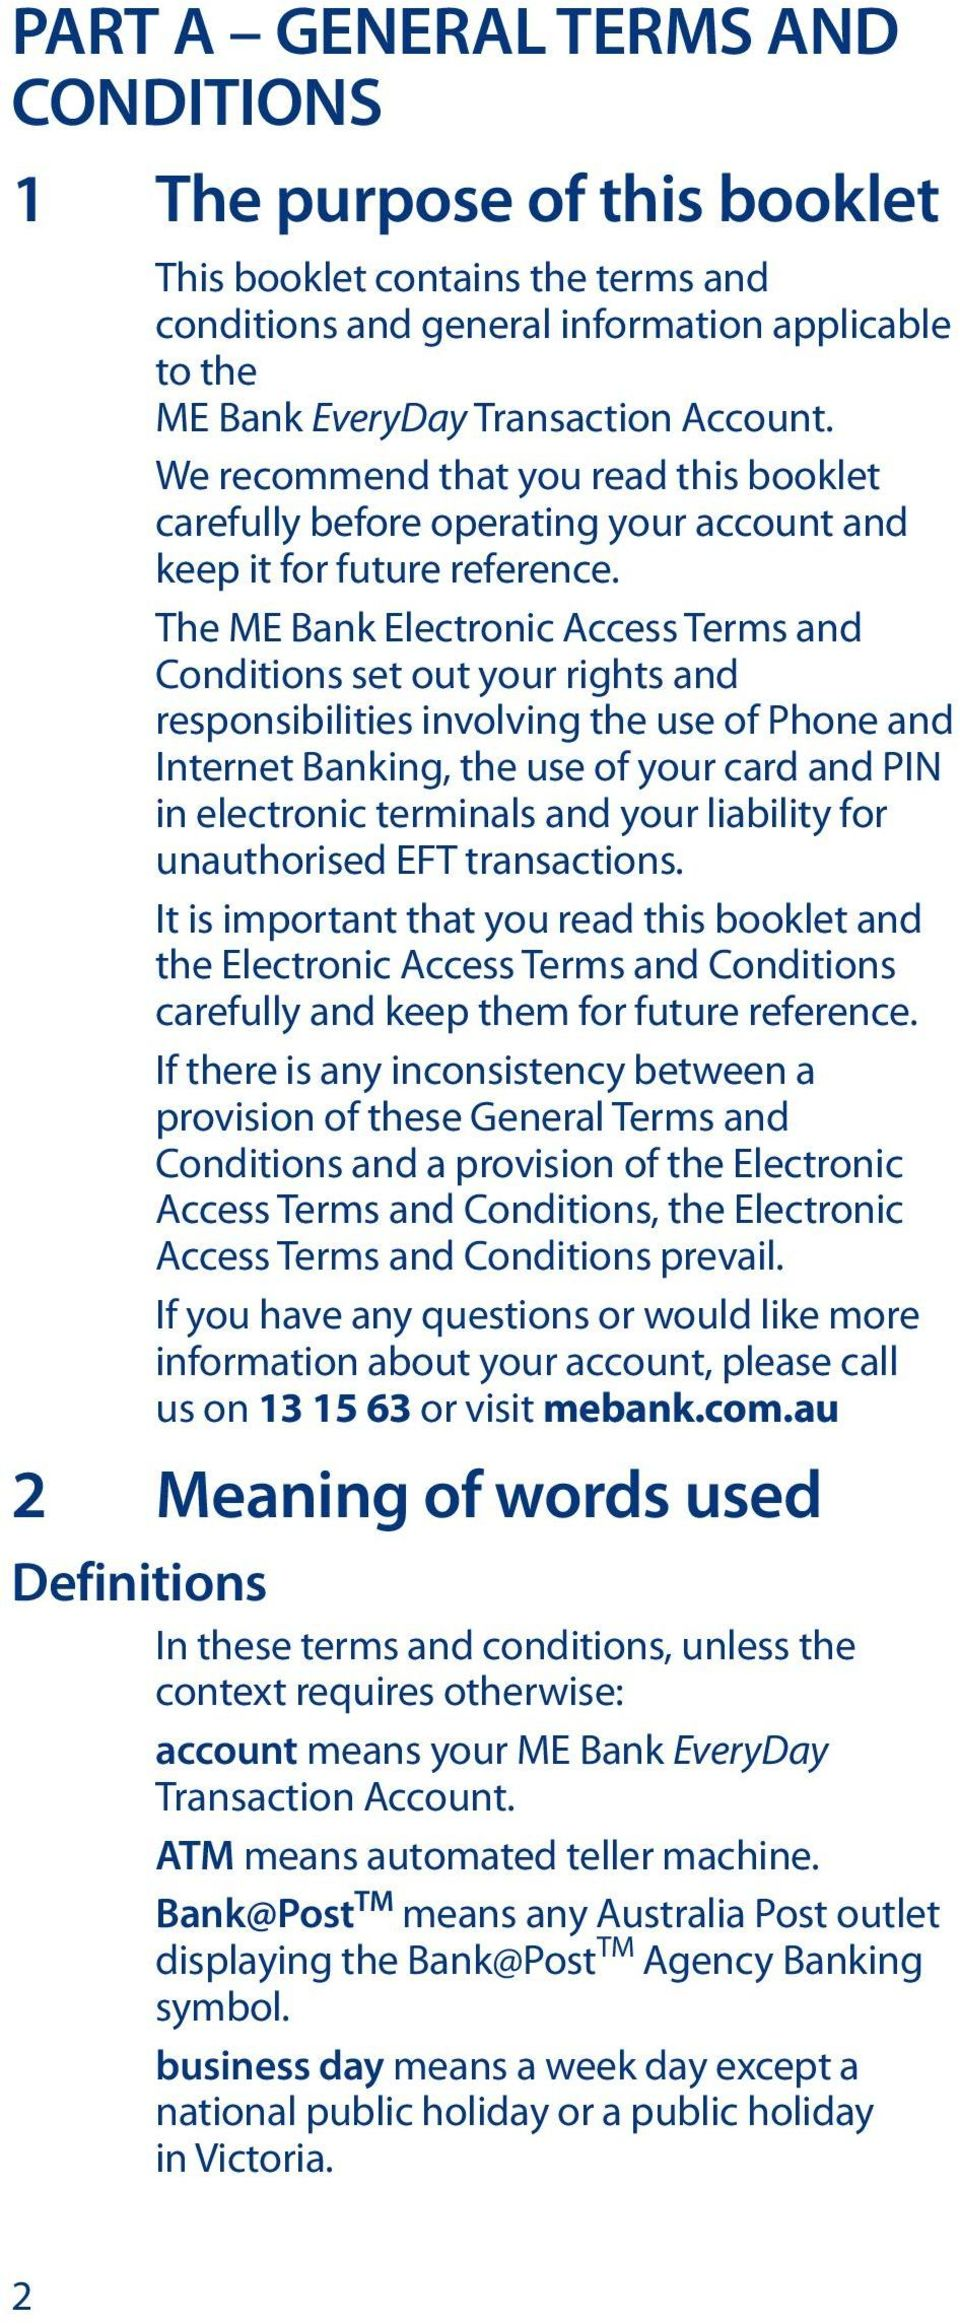 The ME Bank Electronic Access Terms and Conditions set out your rights and responsibilities involving the use of Phone and Internet Banking, the use of your card and PIN in electronic terminals and